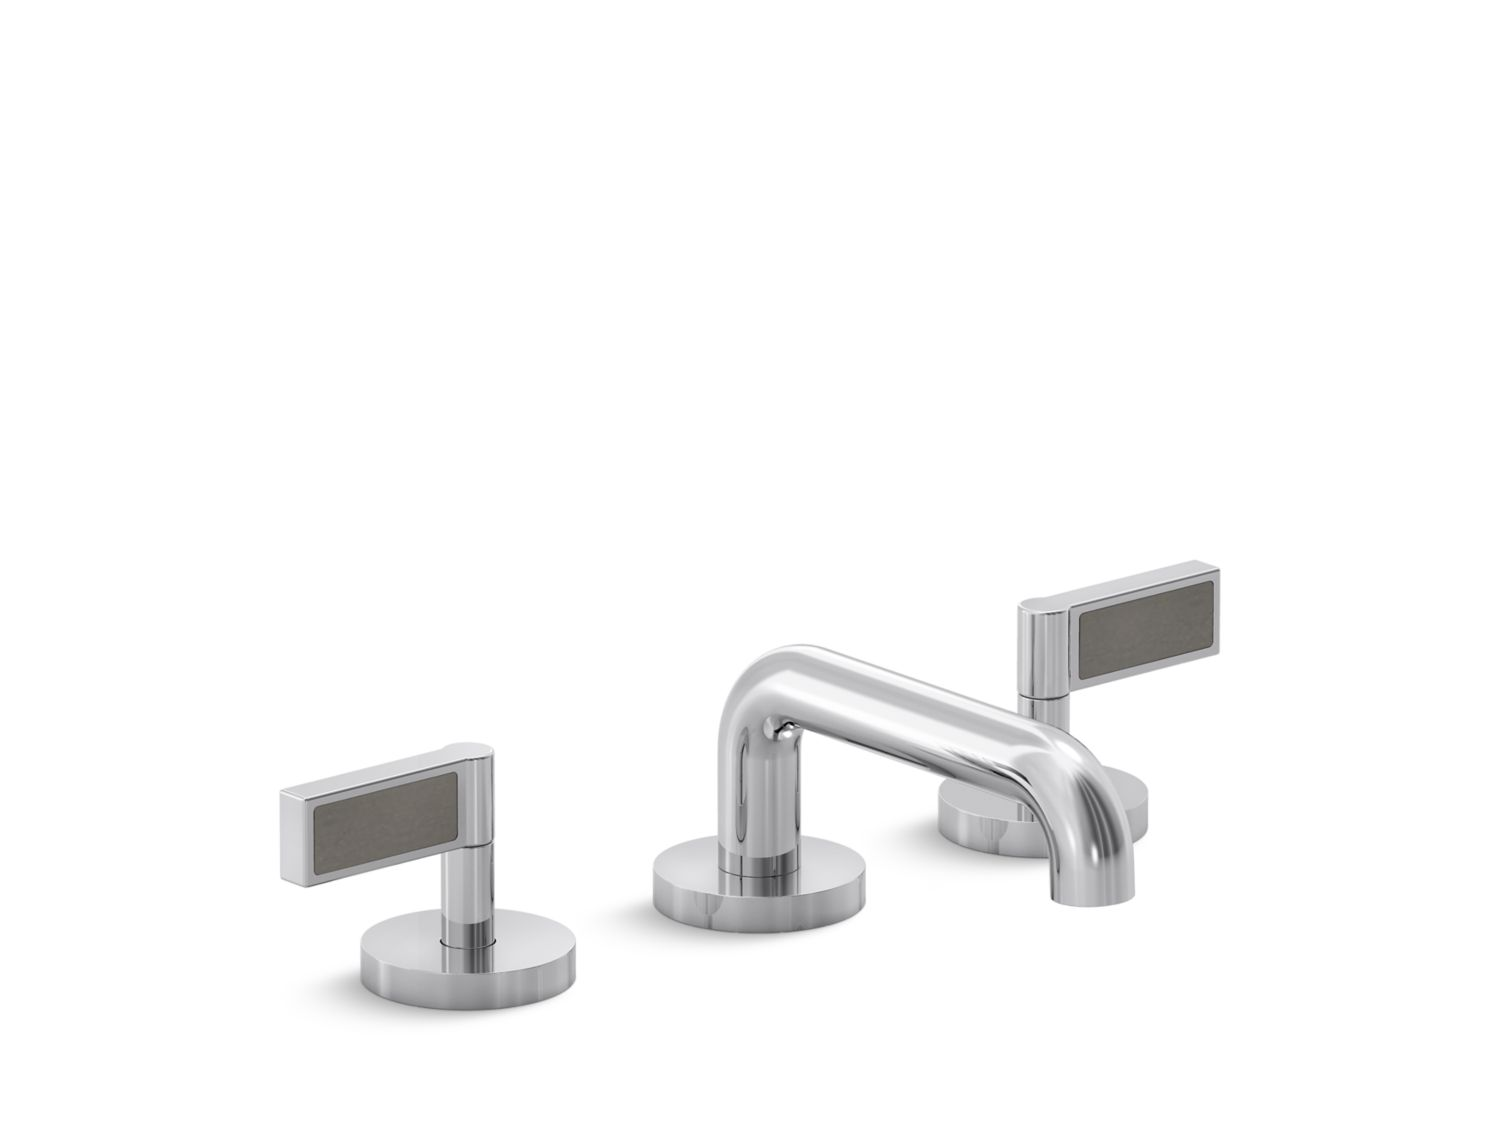 One Decorative Sink Faucet, Grigio Limestone Handles | P24491-GL ...